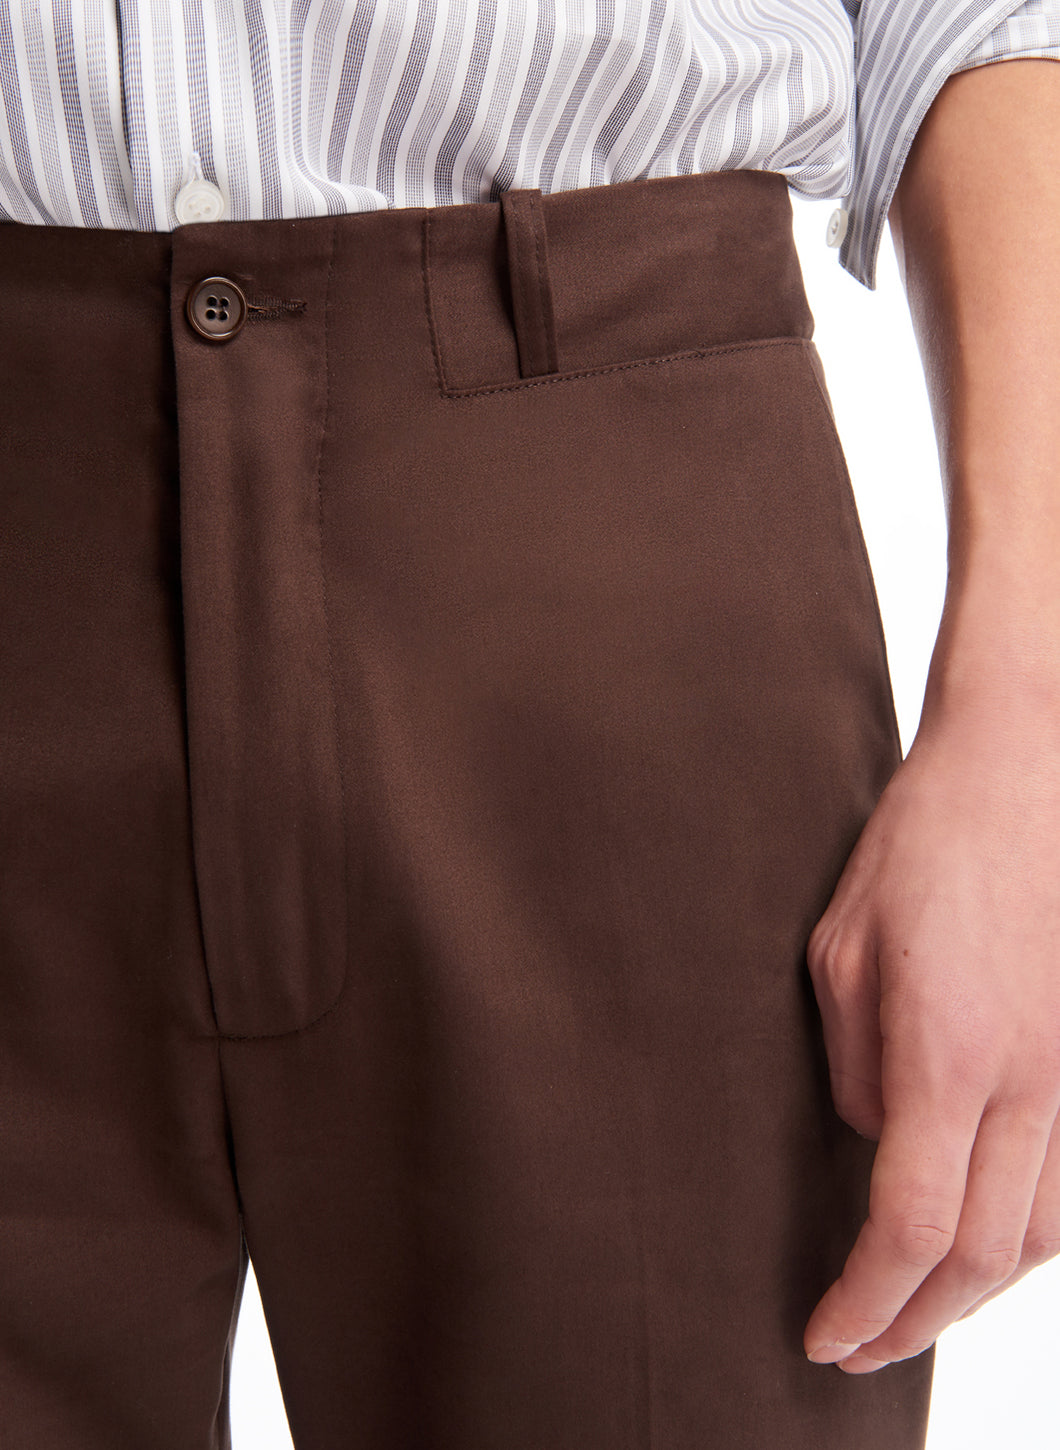 Pants with Inlayed Belt in Chocolate Cotton Satin